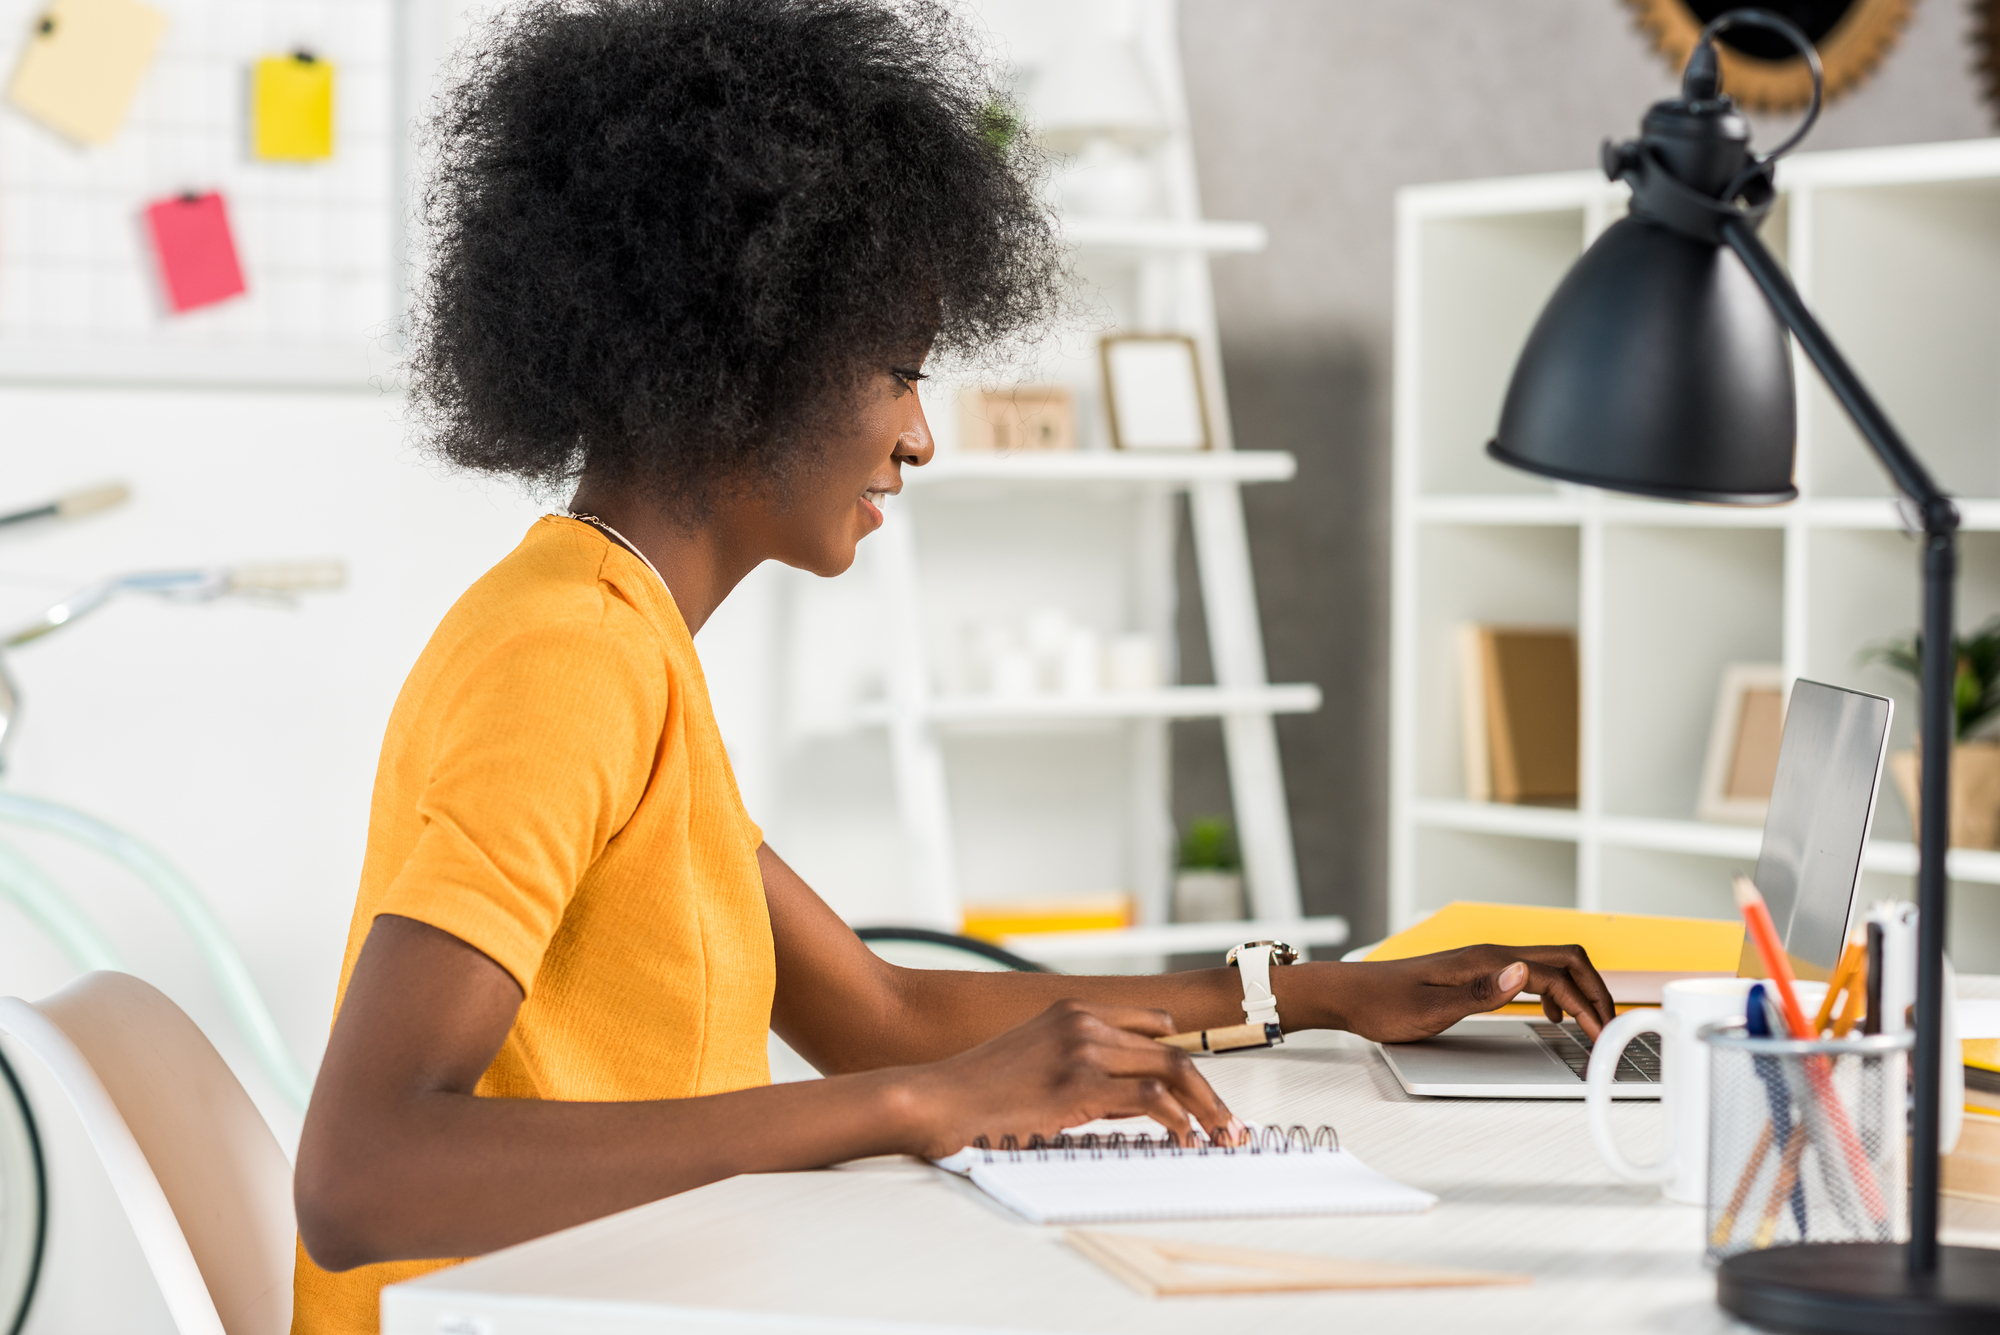 Increase Work Productivity with these Simple Steps